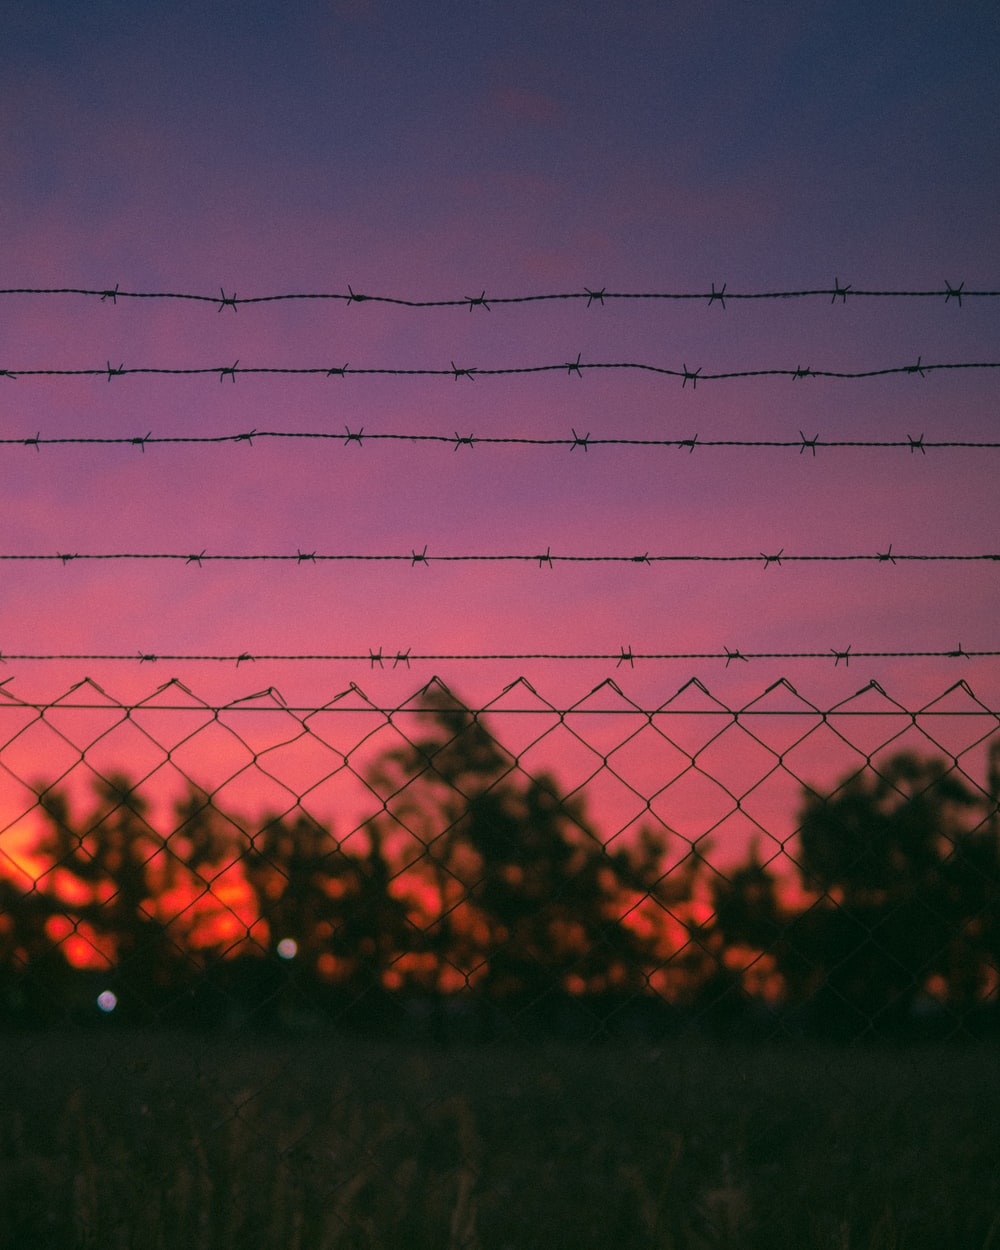 black wire fence during sunset